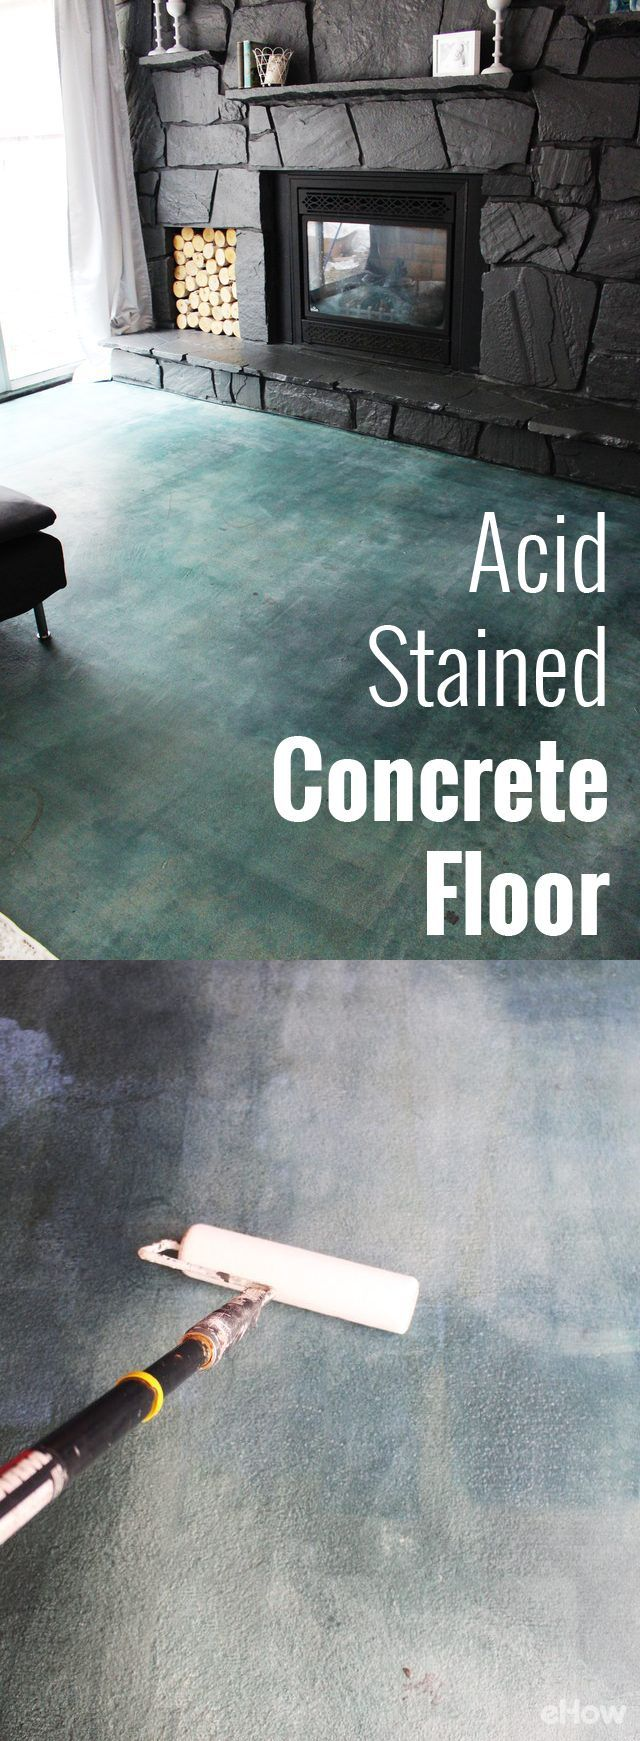 If you're looking for a durable, high impact flooring option that won't totally break the bank, consider a diy acid staining project. Muriatic acid, available in a variety of colors, penetrates concrete and reacts to the lime deposits, coloring the surface and giving a unique finish.  No two acid-stained floors will be the same! http://www.ehow.com/how_6502313_acid-stain-concrete-patio.html?utm_source=pinterest.com&utm_medium=referral&utm_content=freestyle&utm_campaign=fanpage